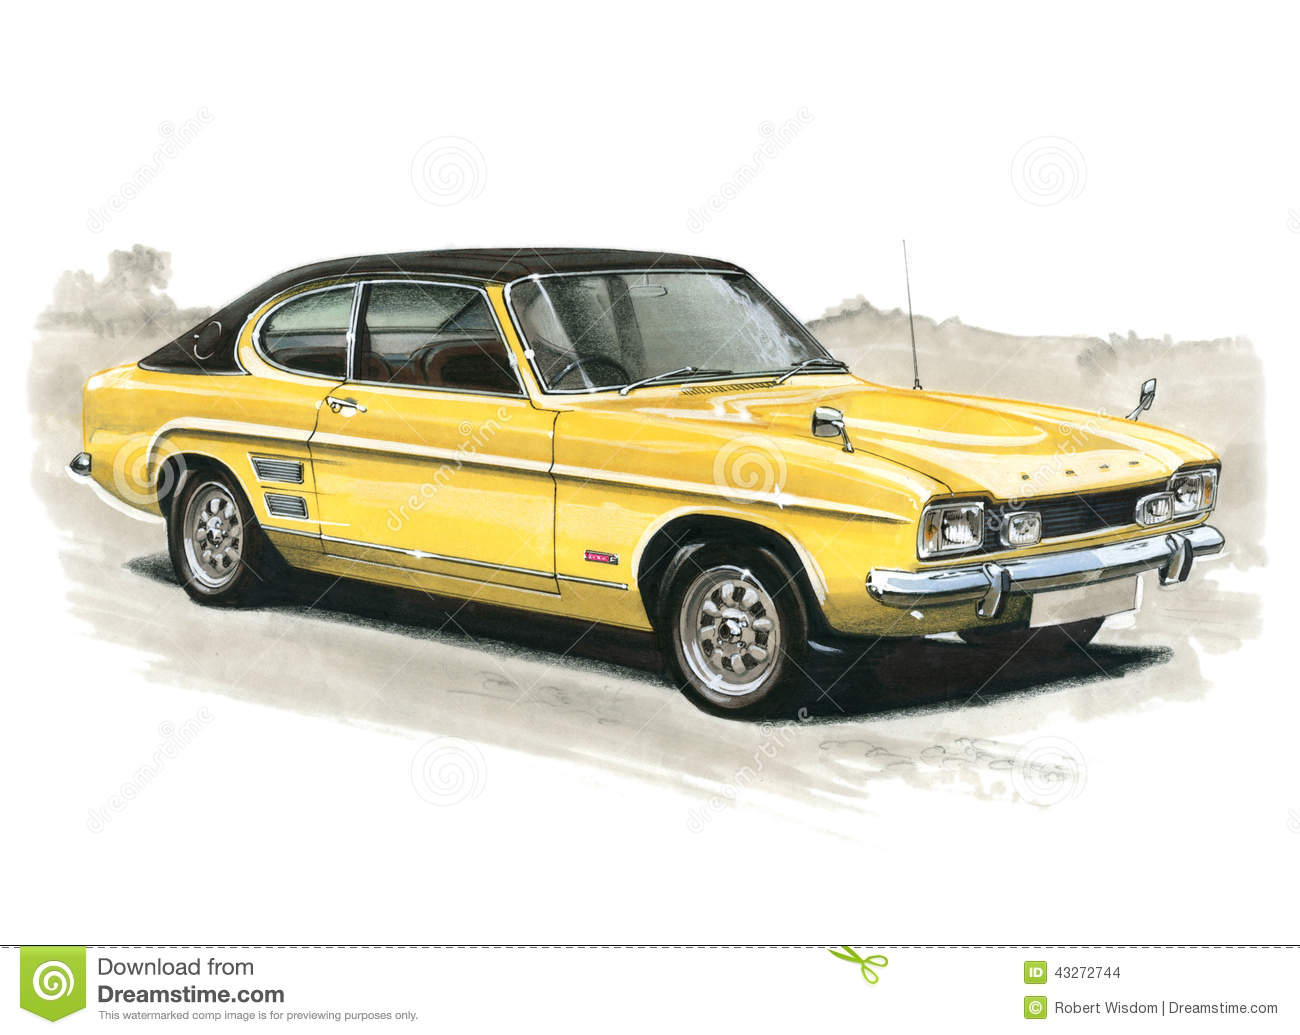 Royalty Free Stock Photography Fifties Singer Image25149327 furthermore 1175661133 also 1996 Honda Integra 12821 additionally Editorial Stock Image Ford Capri Mkiii S Illustration Mk Image43272474 furthermore 1209409307. on old car type z